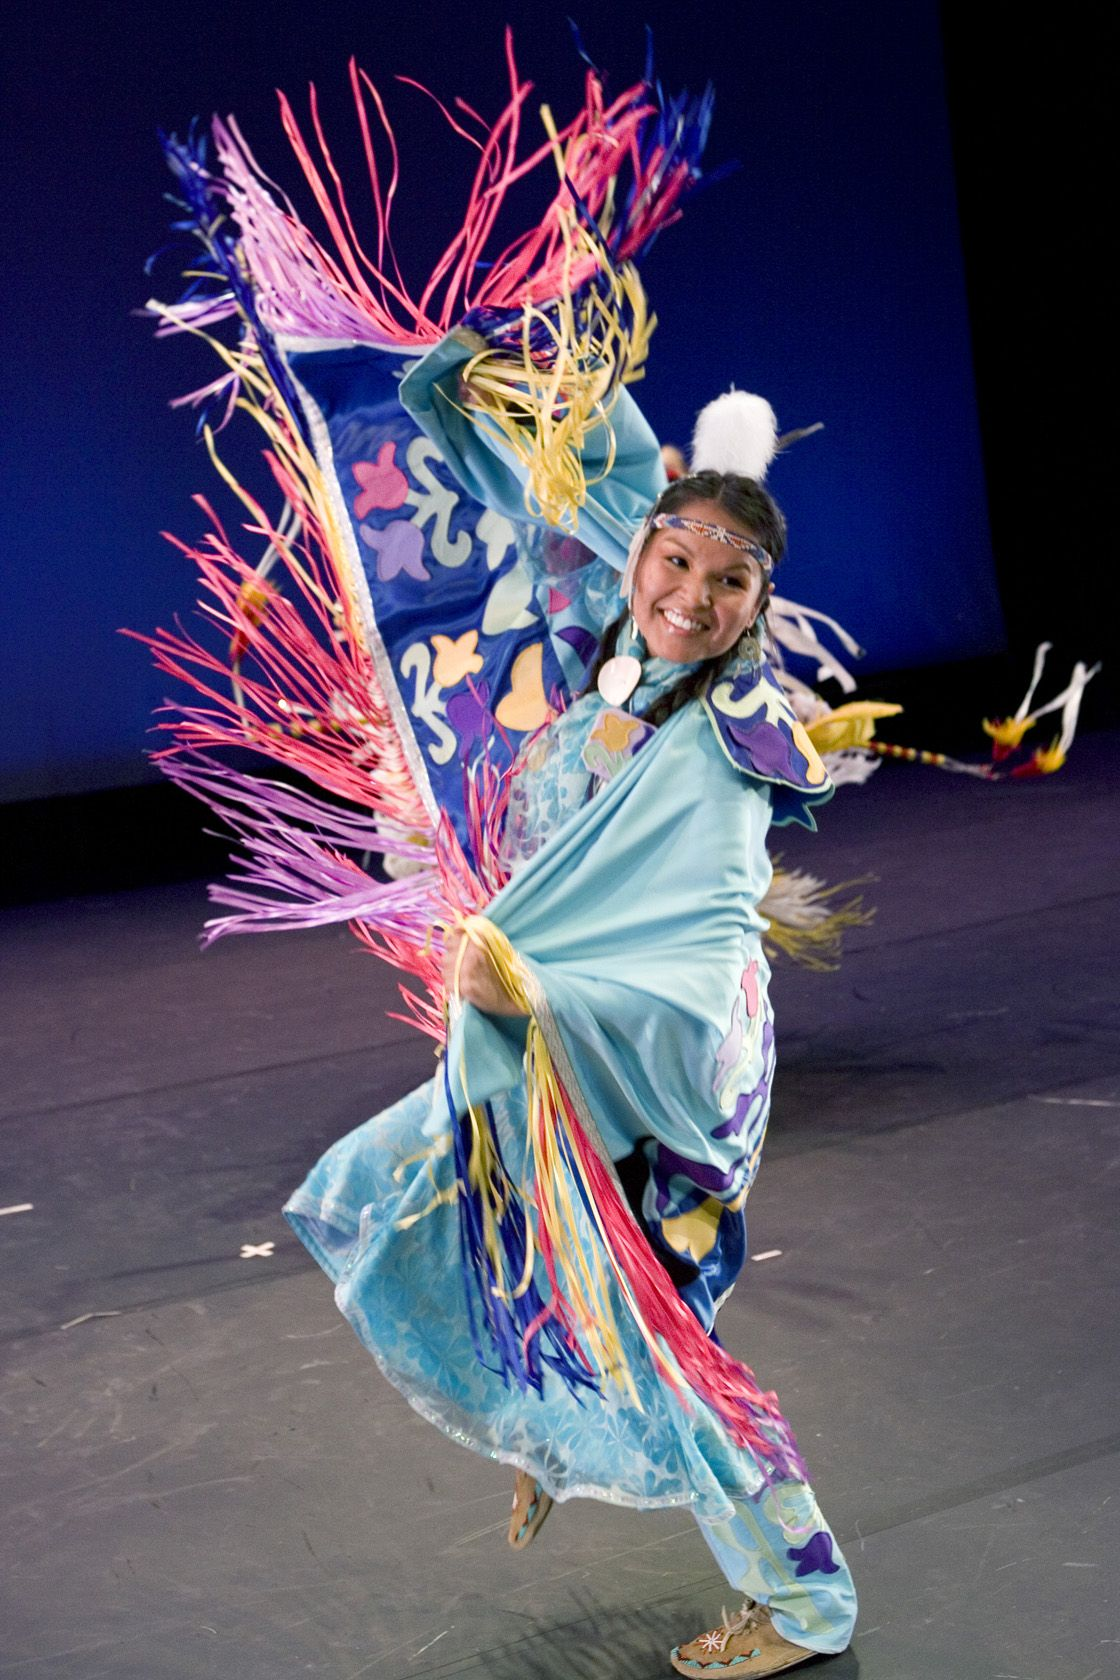 Byus living legends to bring colorful cultures to de jong